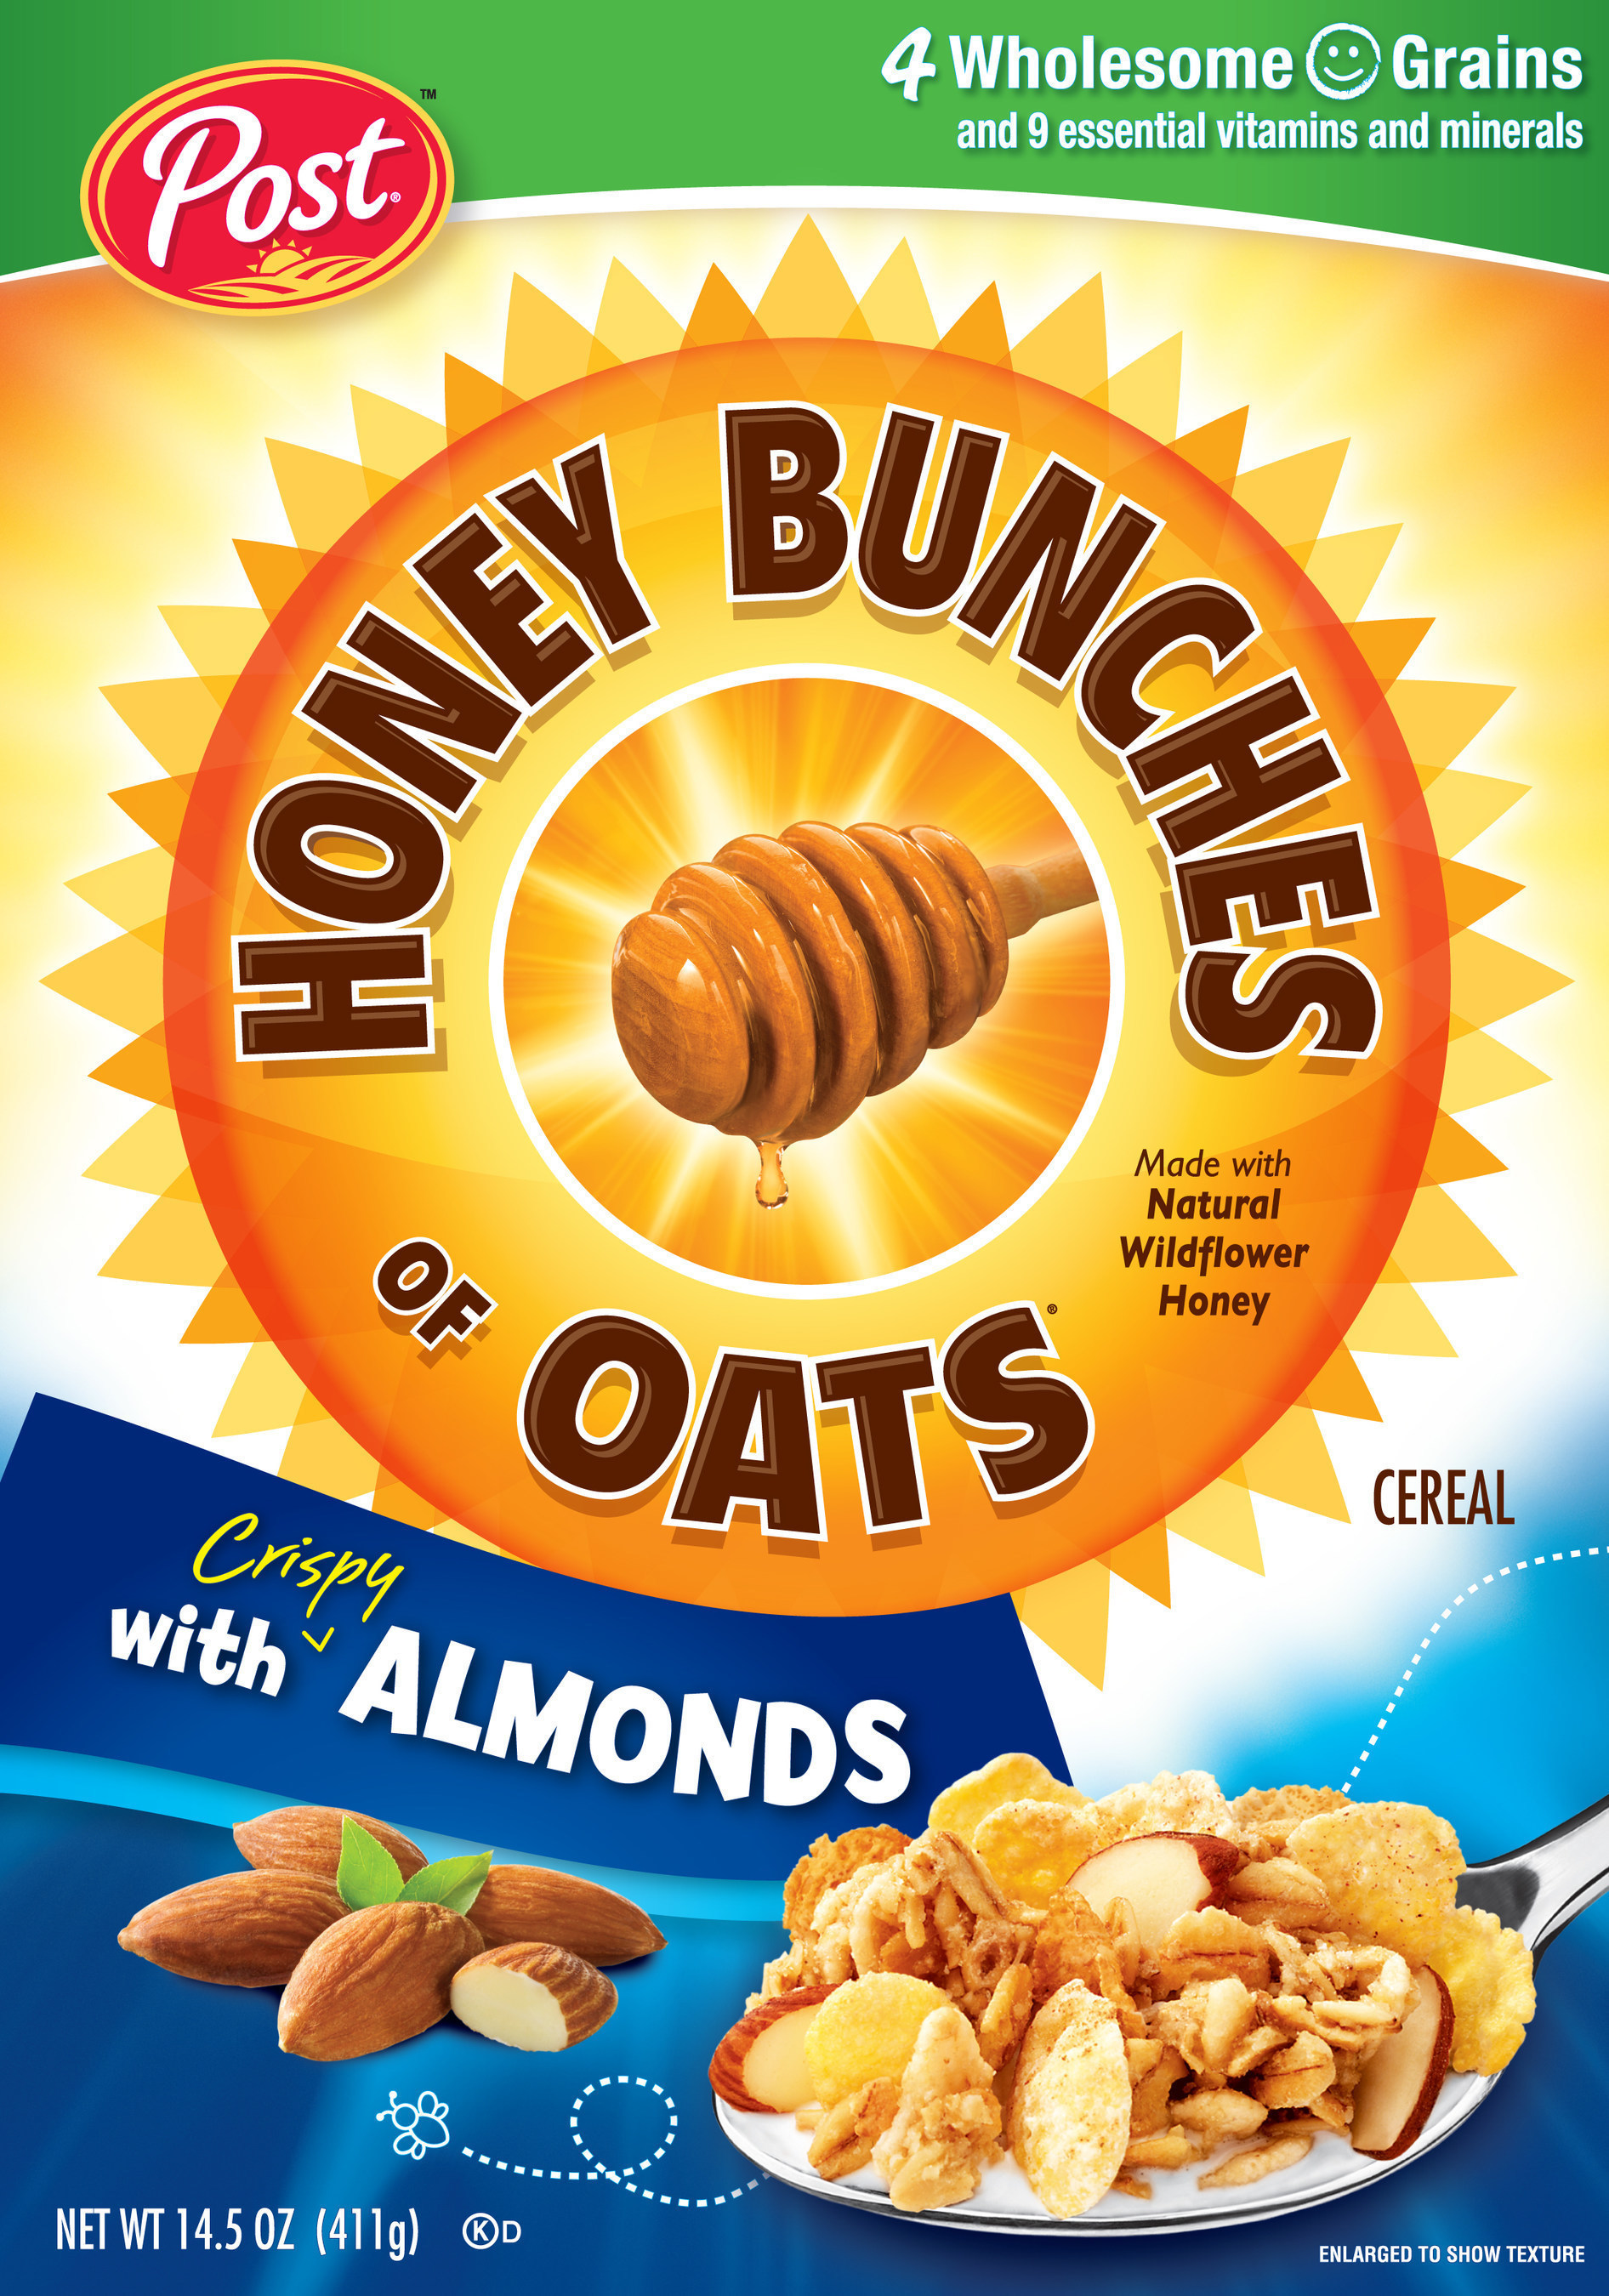 Post's Honey Bunches of Oats' Invites Celebrities to Join the Social Movement #LatinosConDedicacion Launching The 16th Annual Latin GRAMMY' Gift Lounge